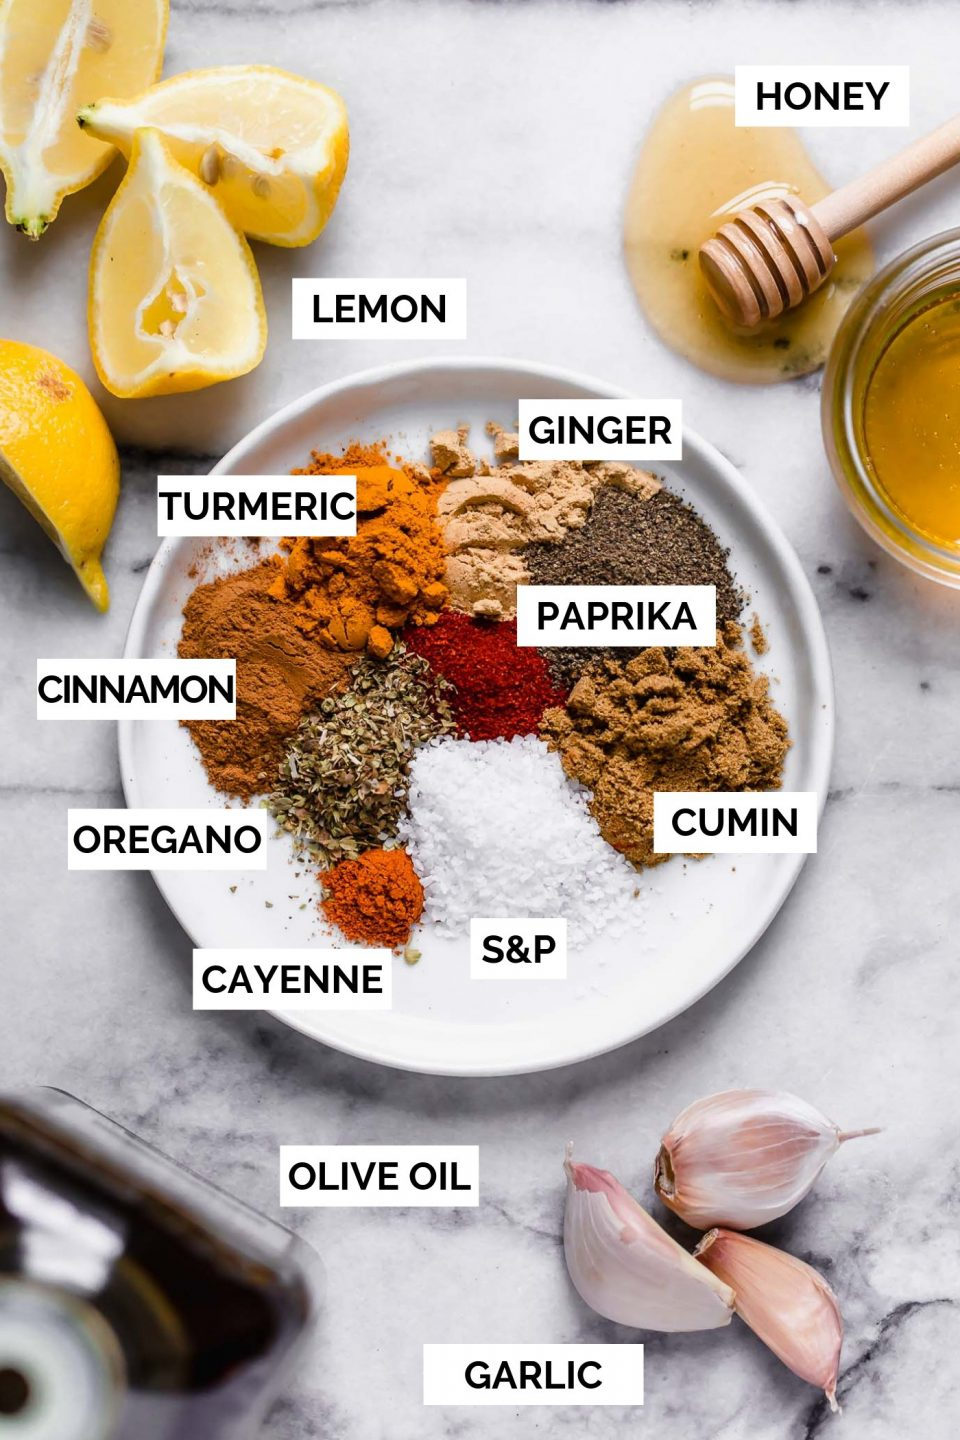 Shawarma ingredients (honey, lemon olive oil, and garlic) surrounding a white plate full of shawarma spices